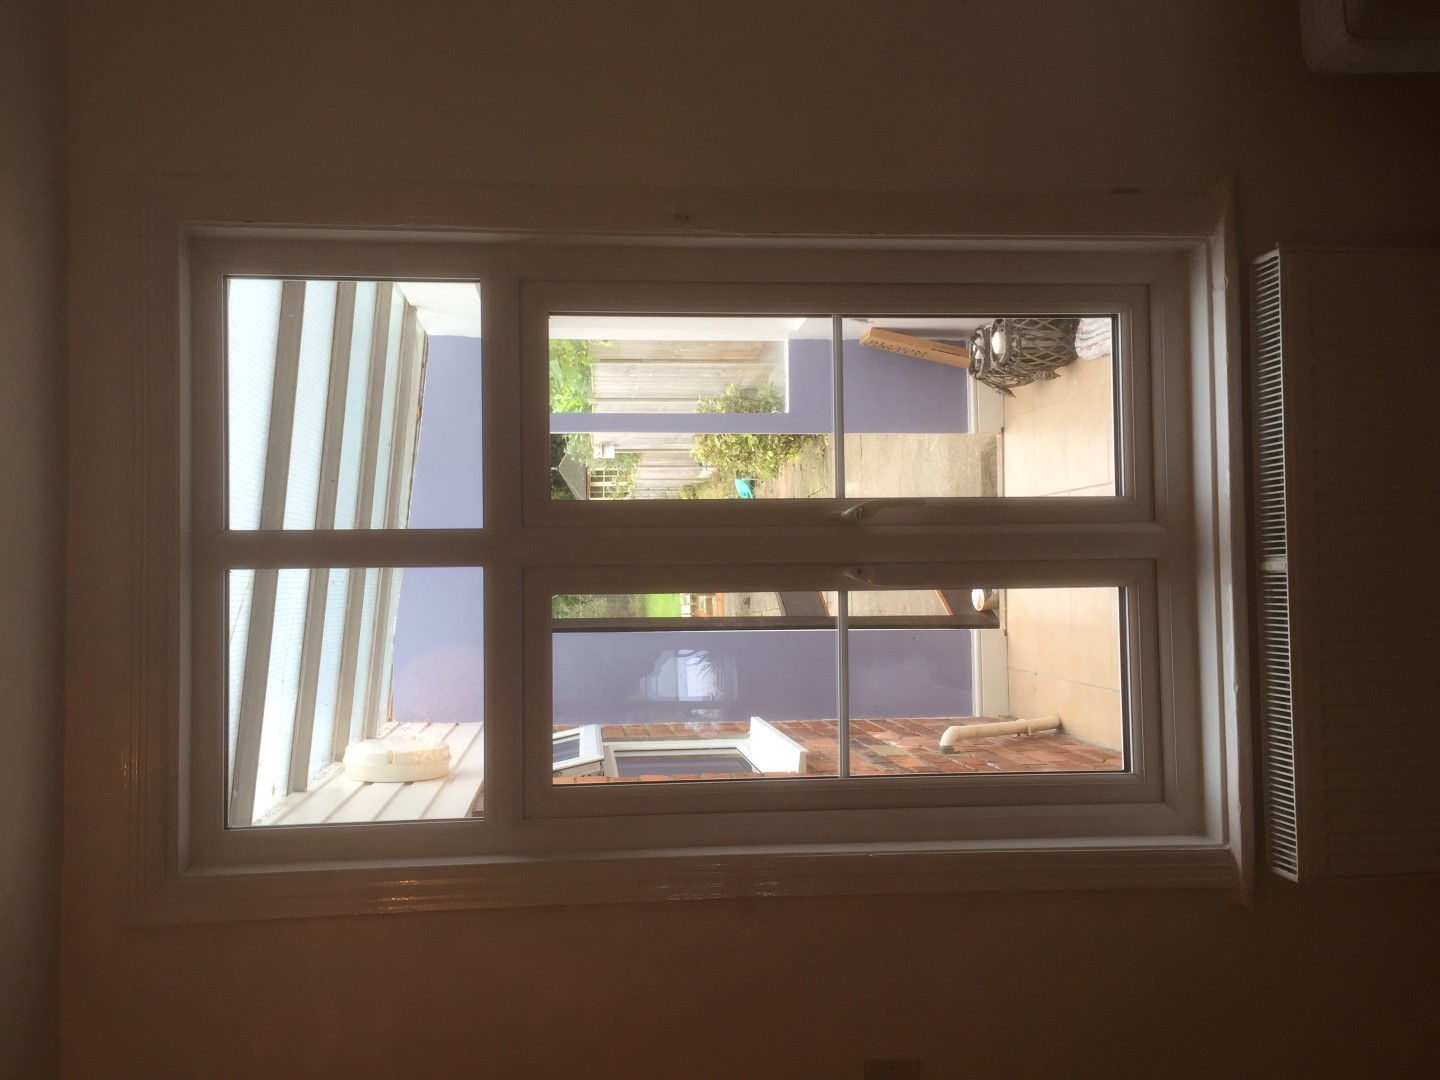 New lounge window with georgian bars